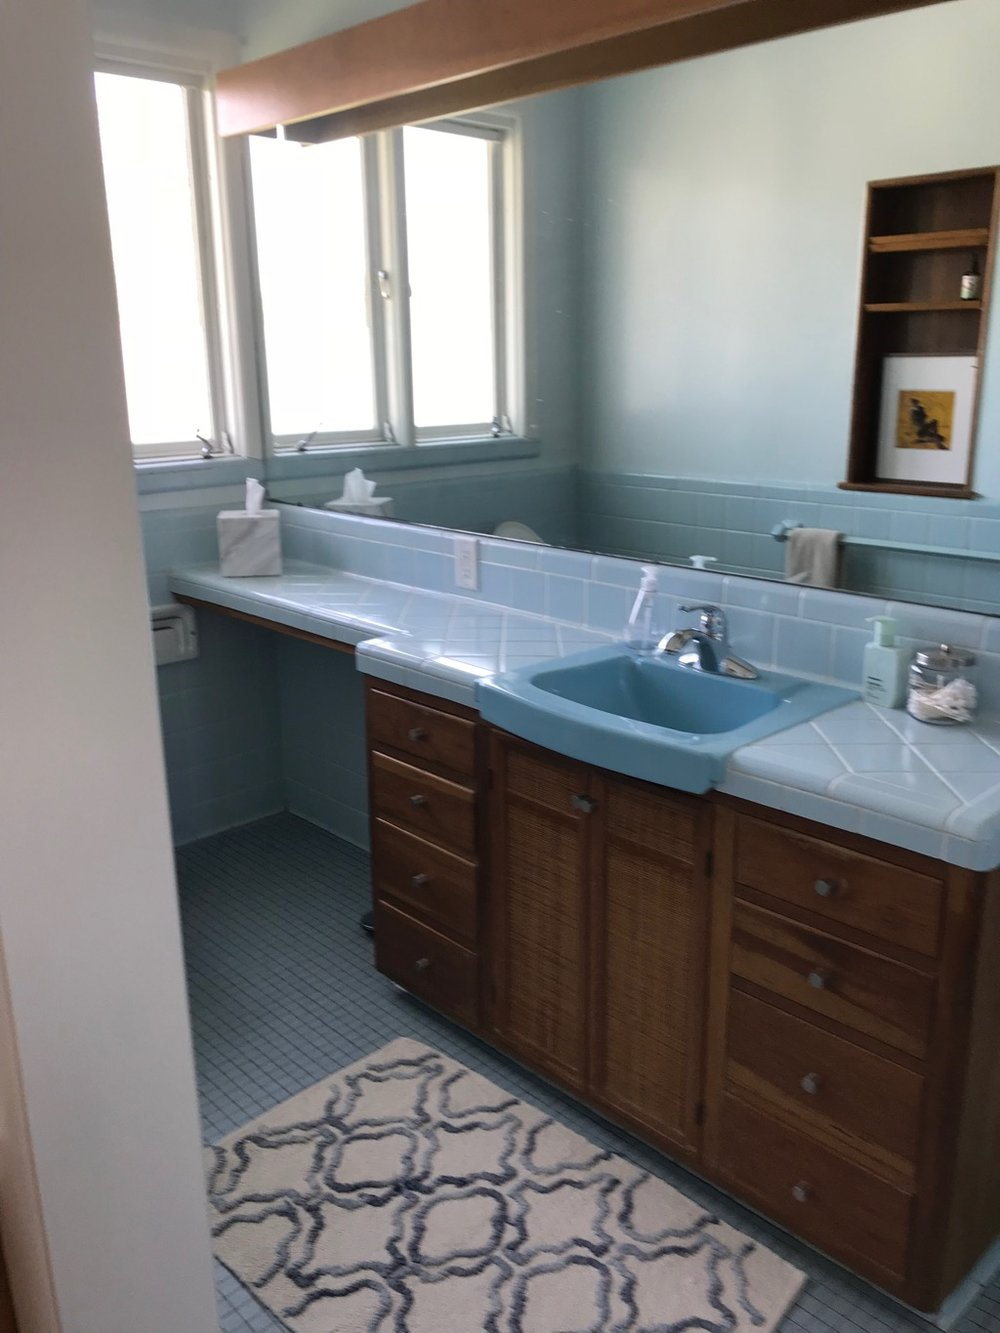 1 MASTER BATHROOM STUDY IN BLUE.jpg